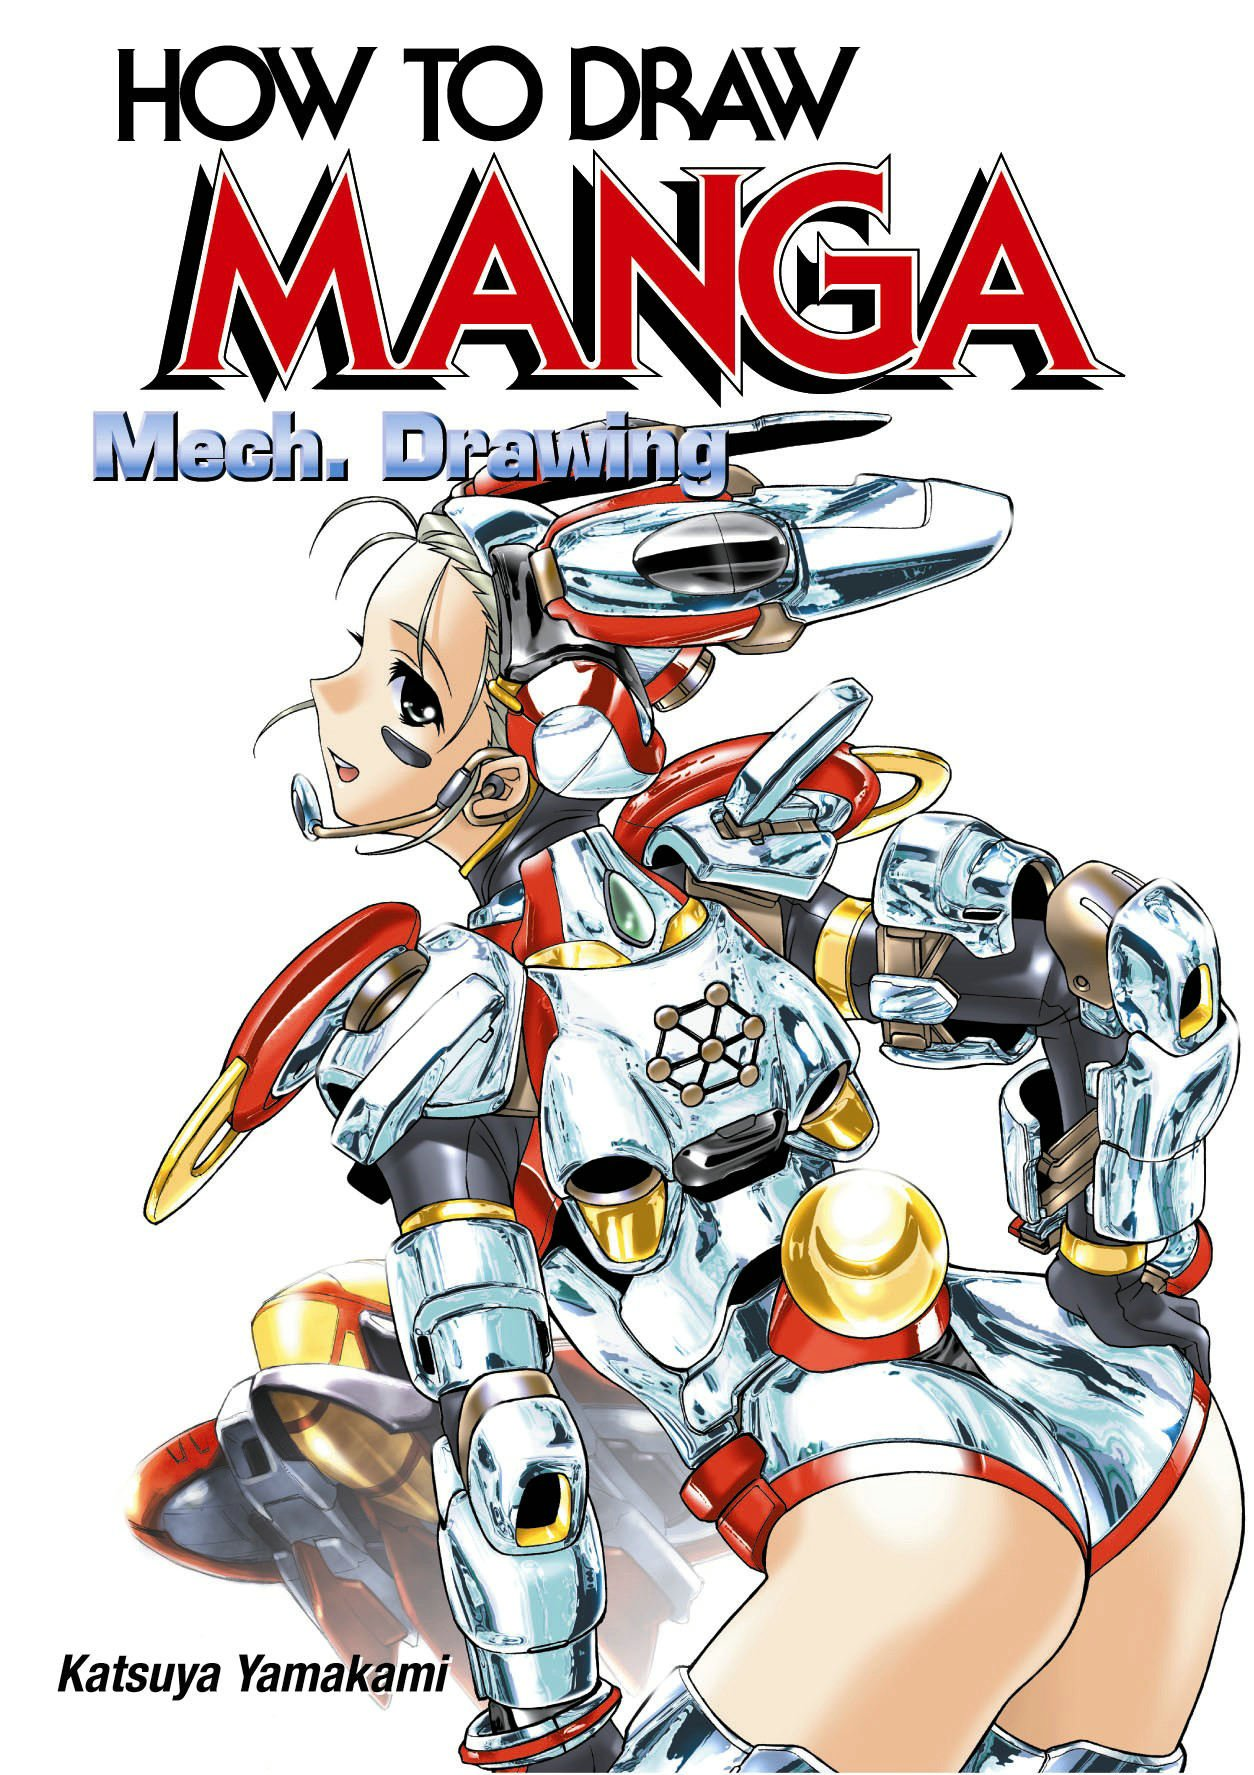 Download How to Draw Manga: Mech. Drawing (How to Draw Manga) (v. 32) ebook